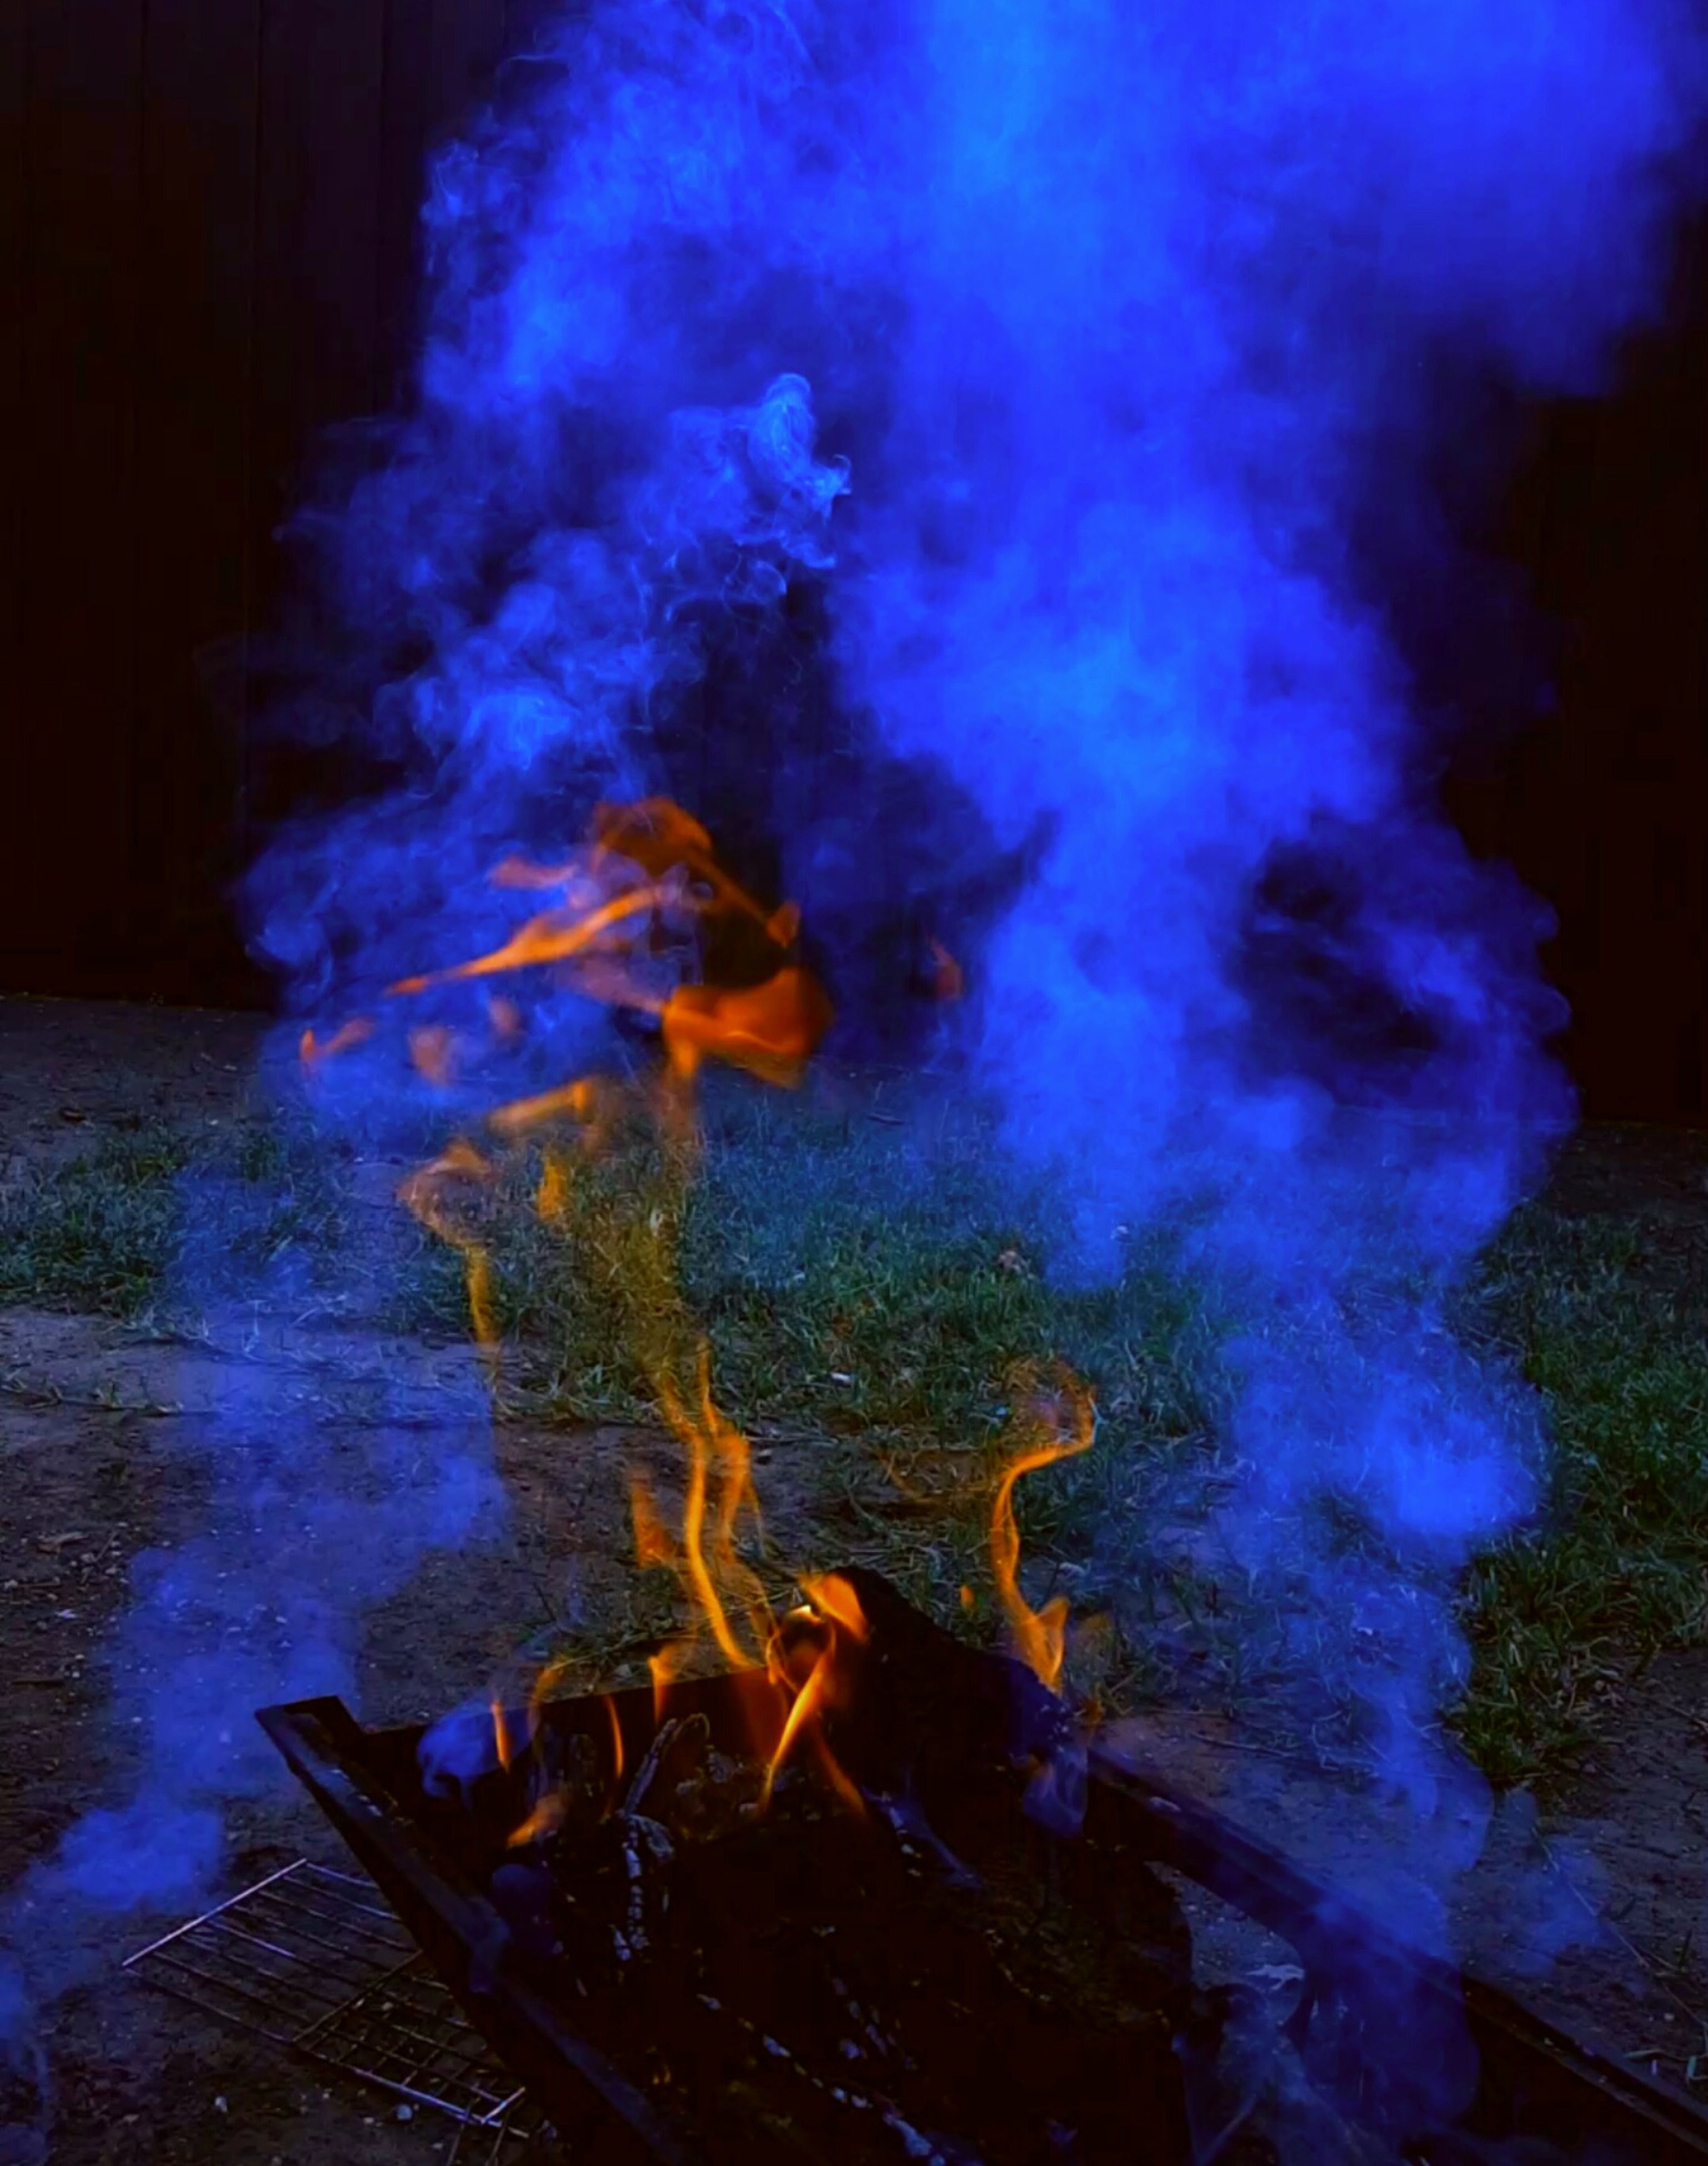 fire - natural phenomenon, burning, night, flame, heat - temperature, illuminated, long exposure, glowing, smoke - physical structure, motion, bonfire, light - natural phenomenon, smoke, campfire, arts culture and entertainment, fire, sparks, danger, blurred motion, indoors